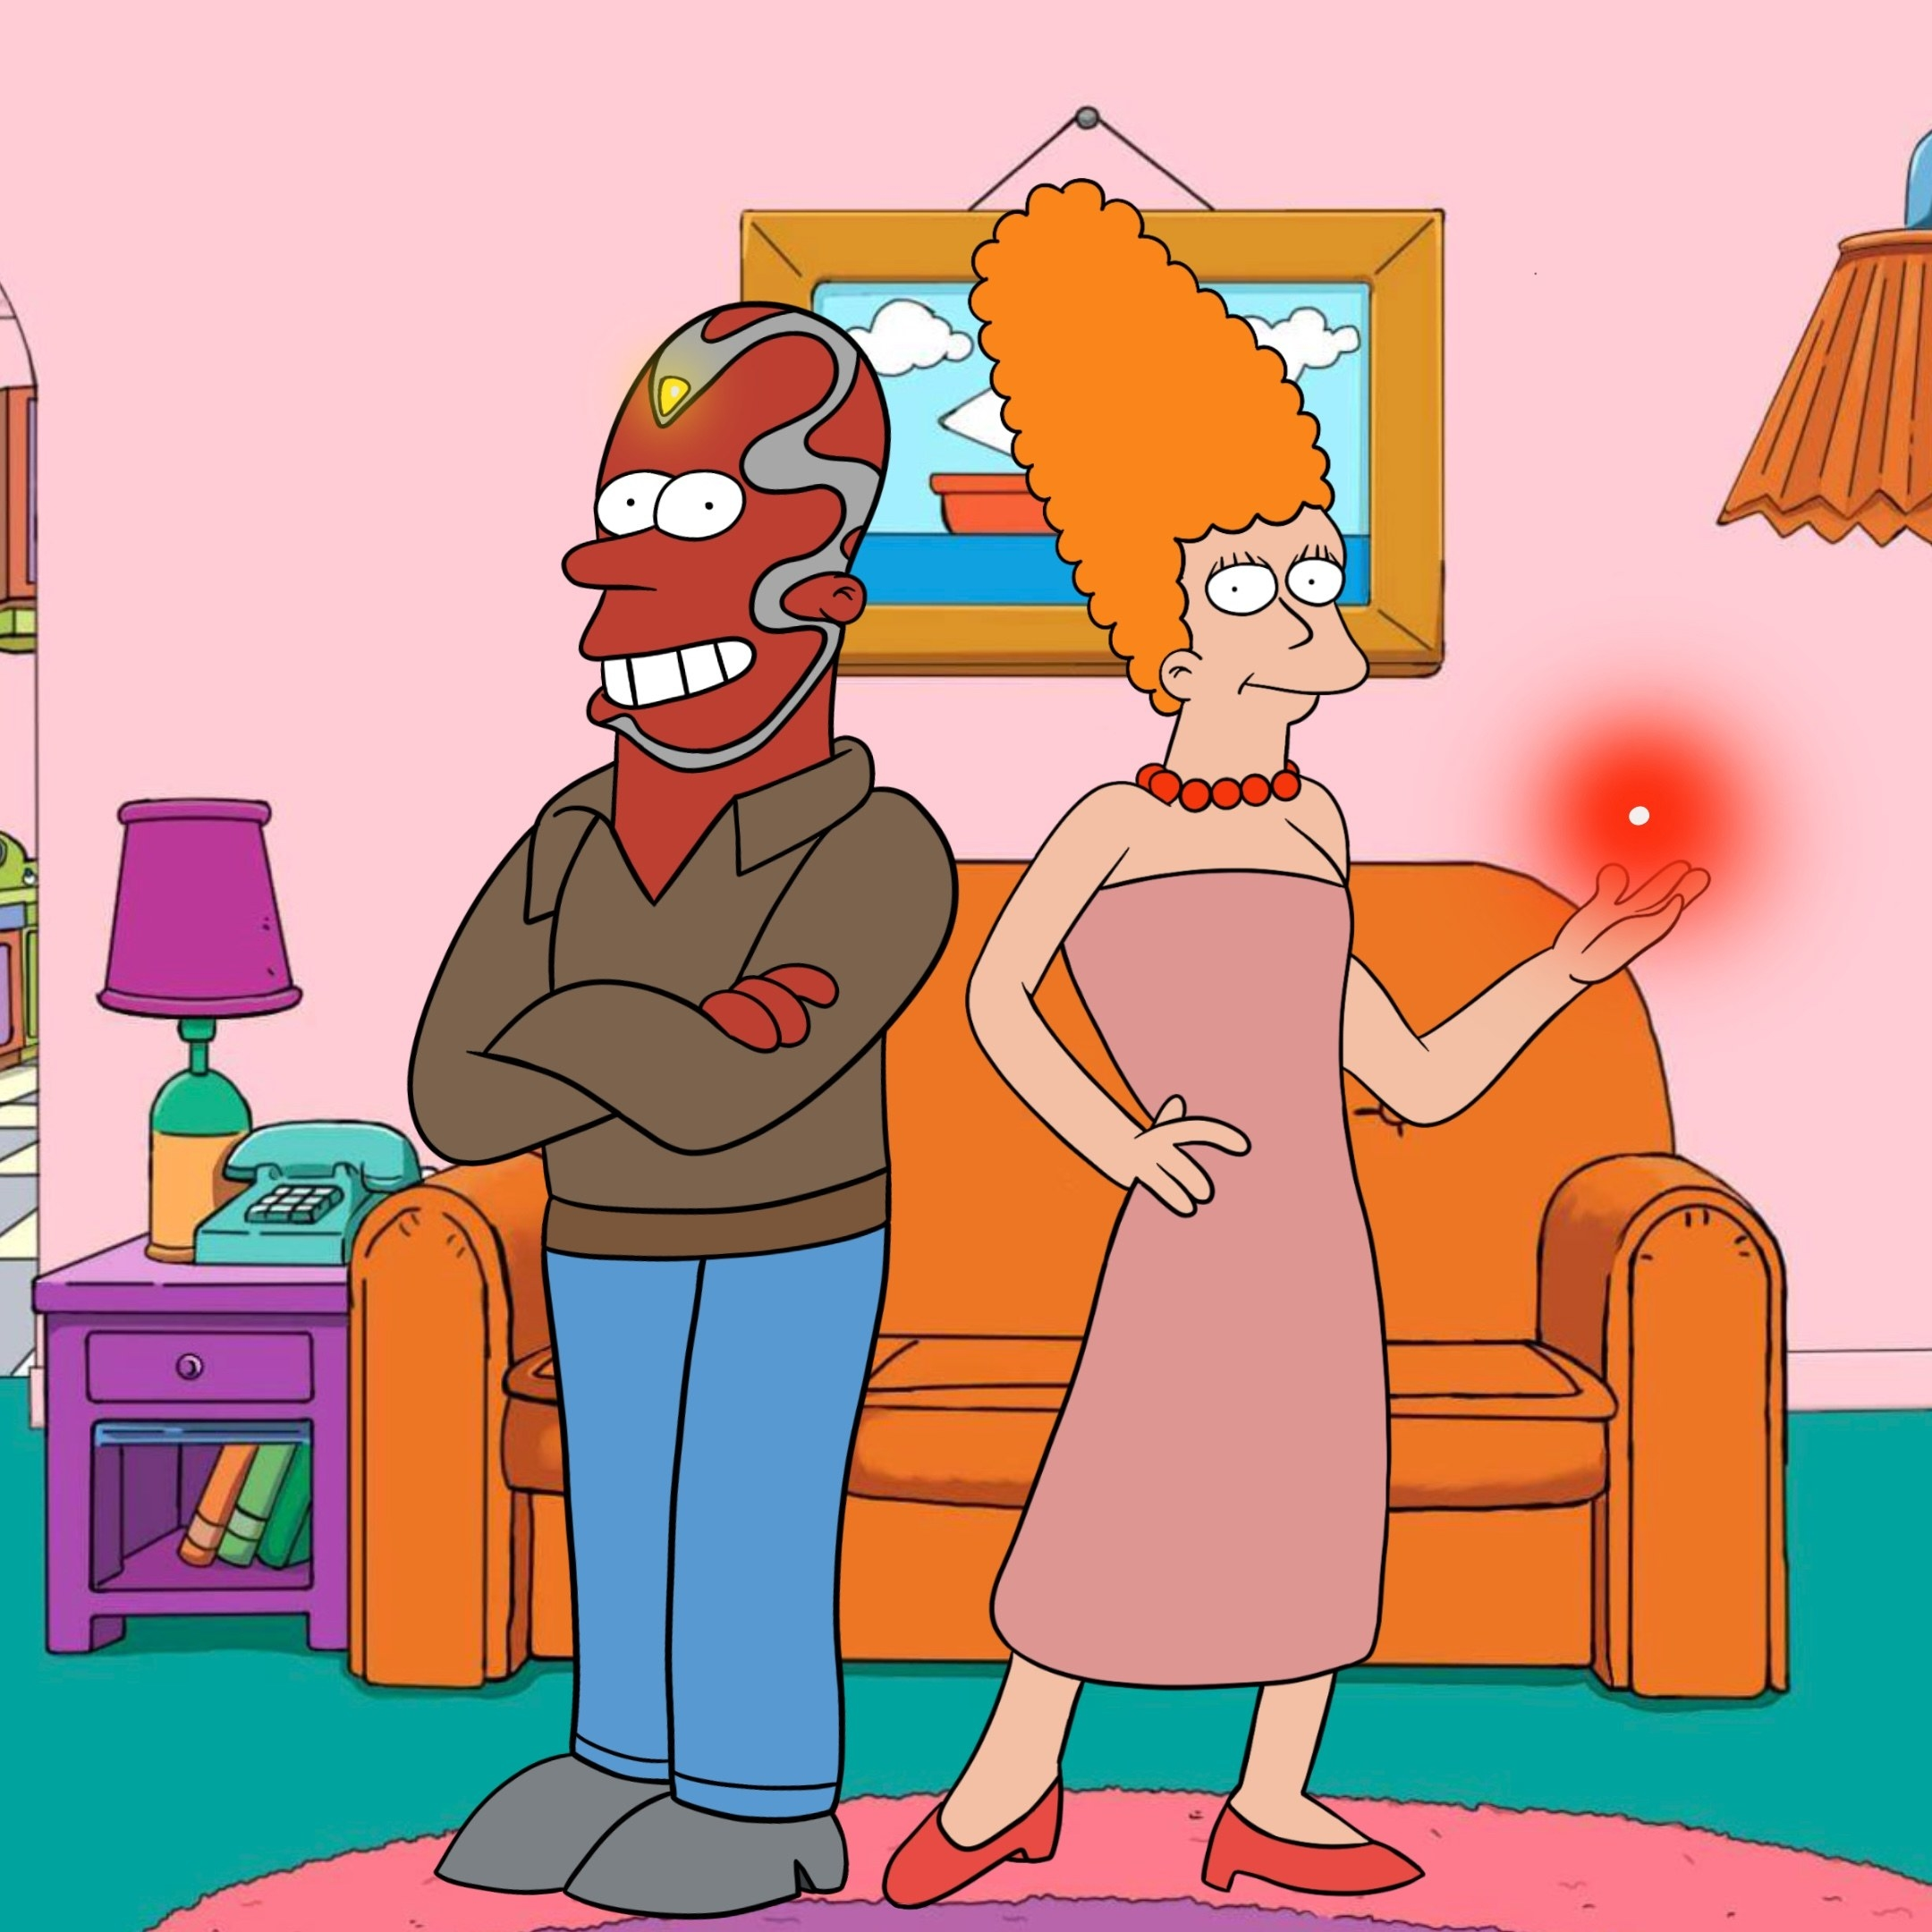 Wanda and Vision drawn as The Simpsons-style characters